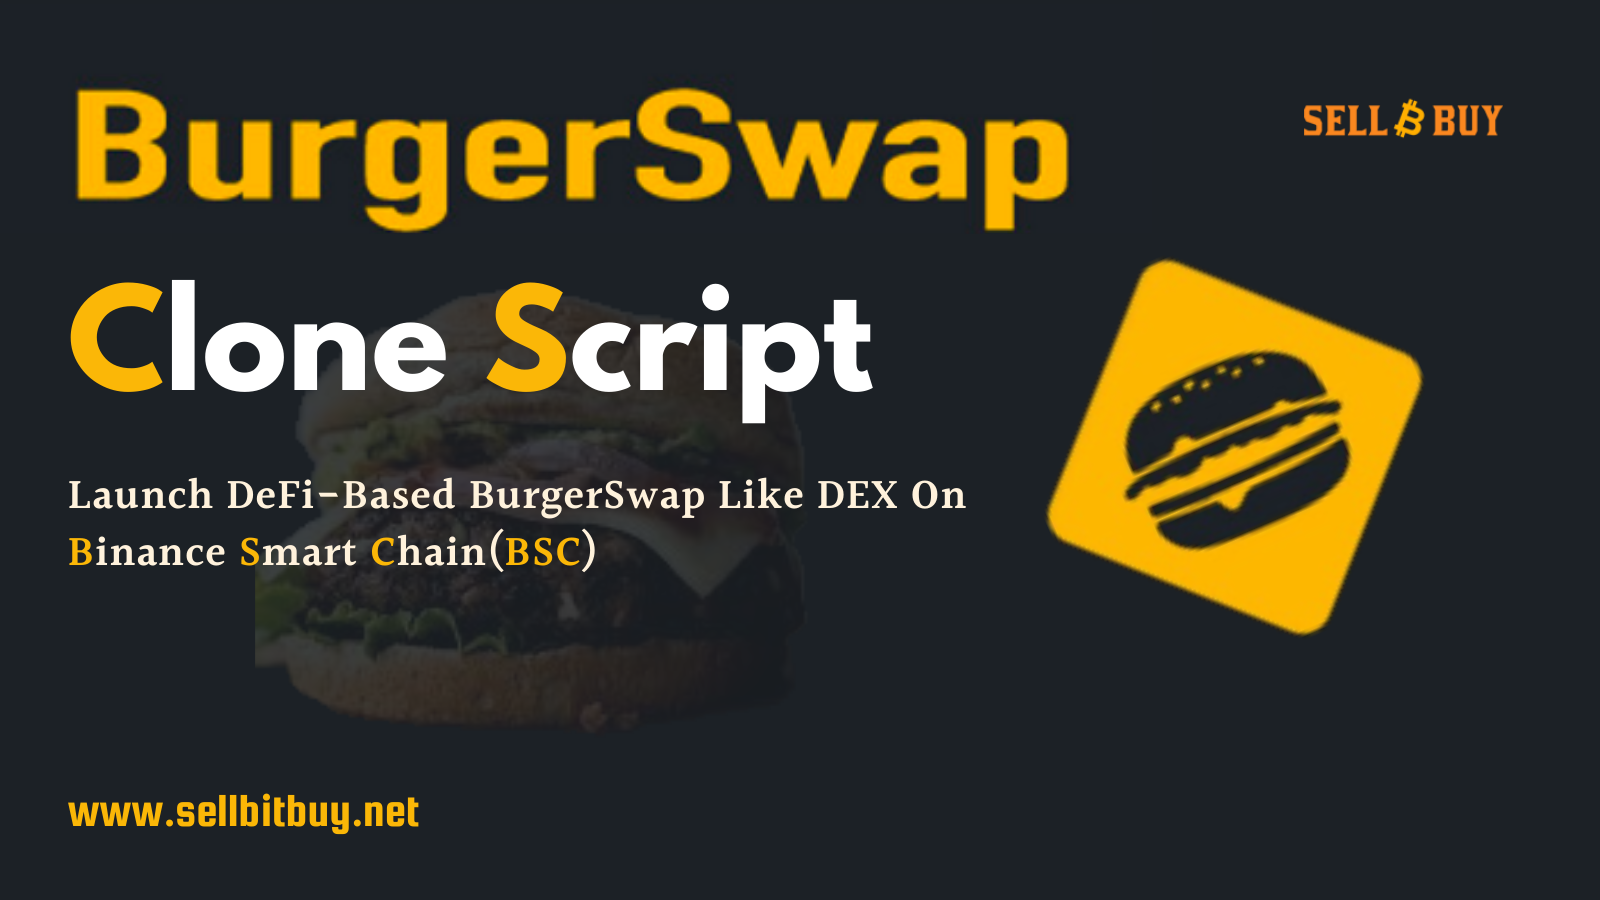 BurgerSwap Clone Script - Create DeFi DEX Like Burger Swap On Binance Smart Chain (BSC)